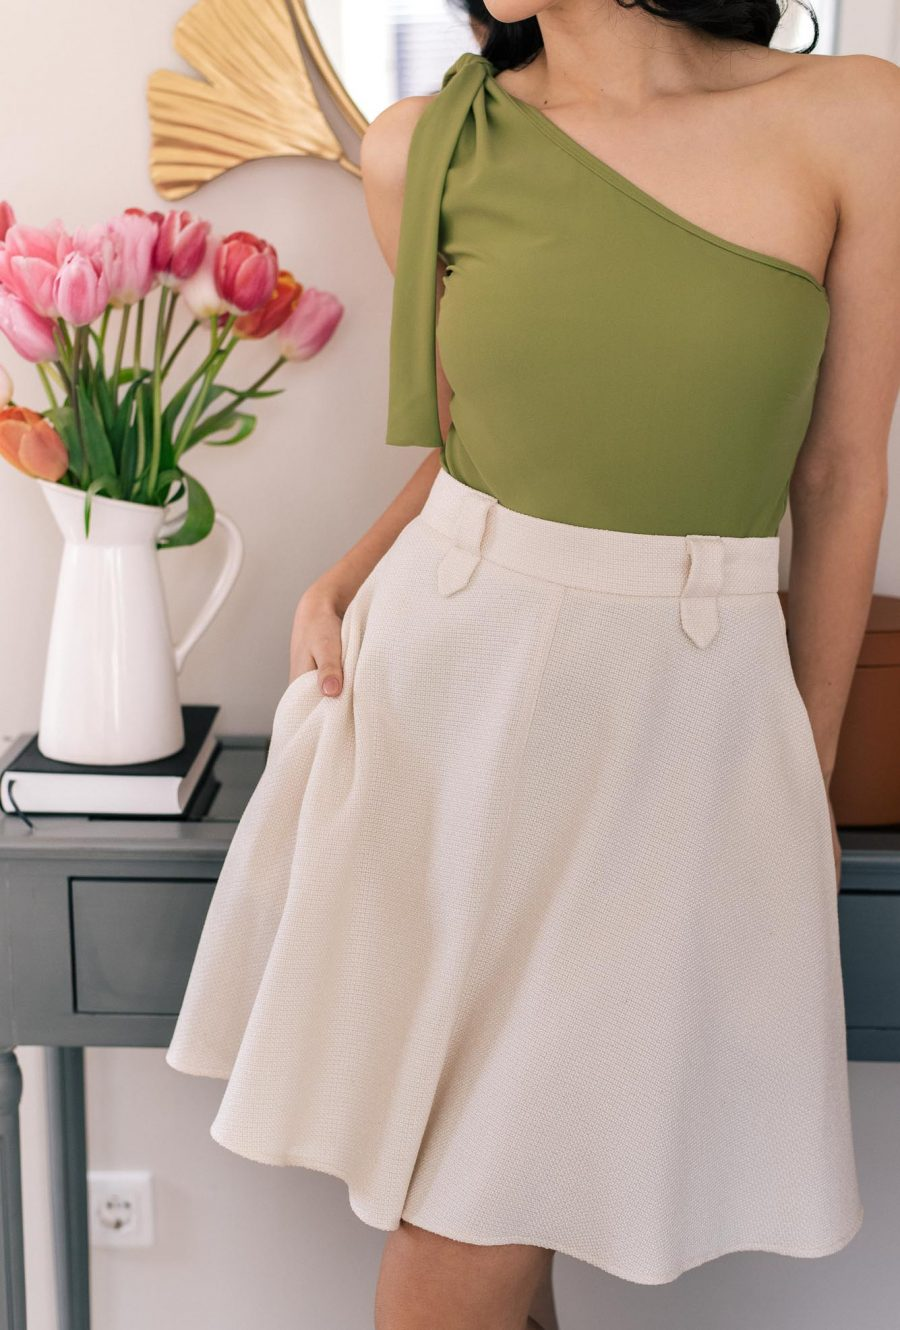 Cotton skirt spring collection_4937